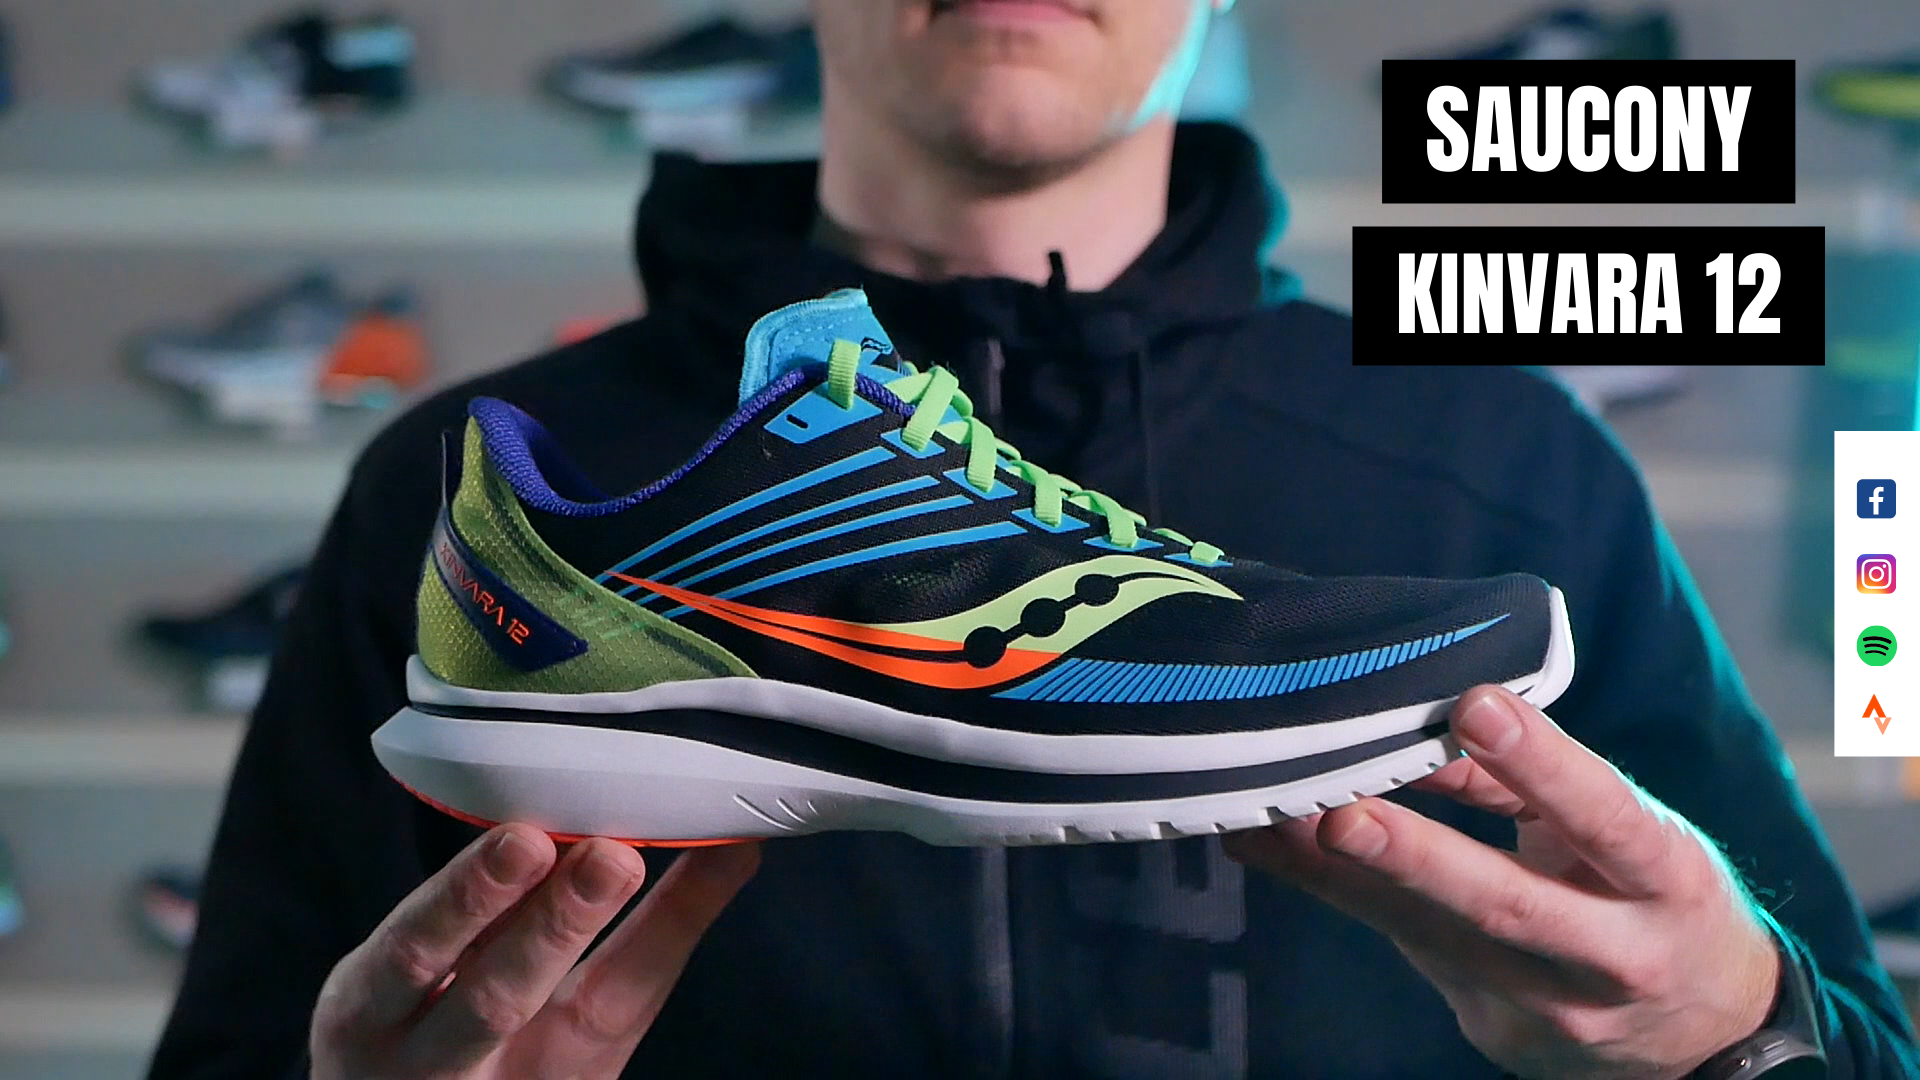 Review: Saucony Kinvara 12